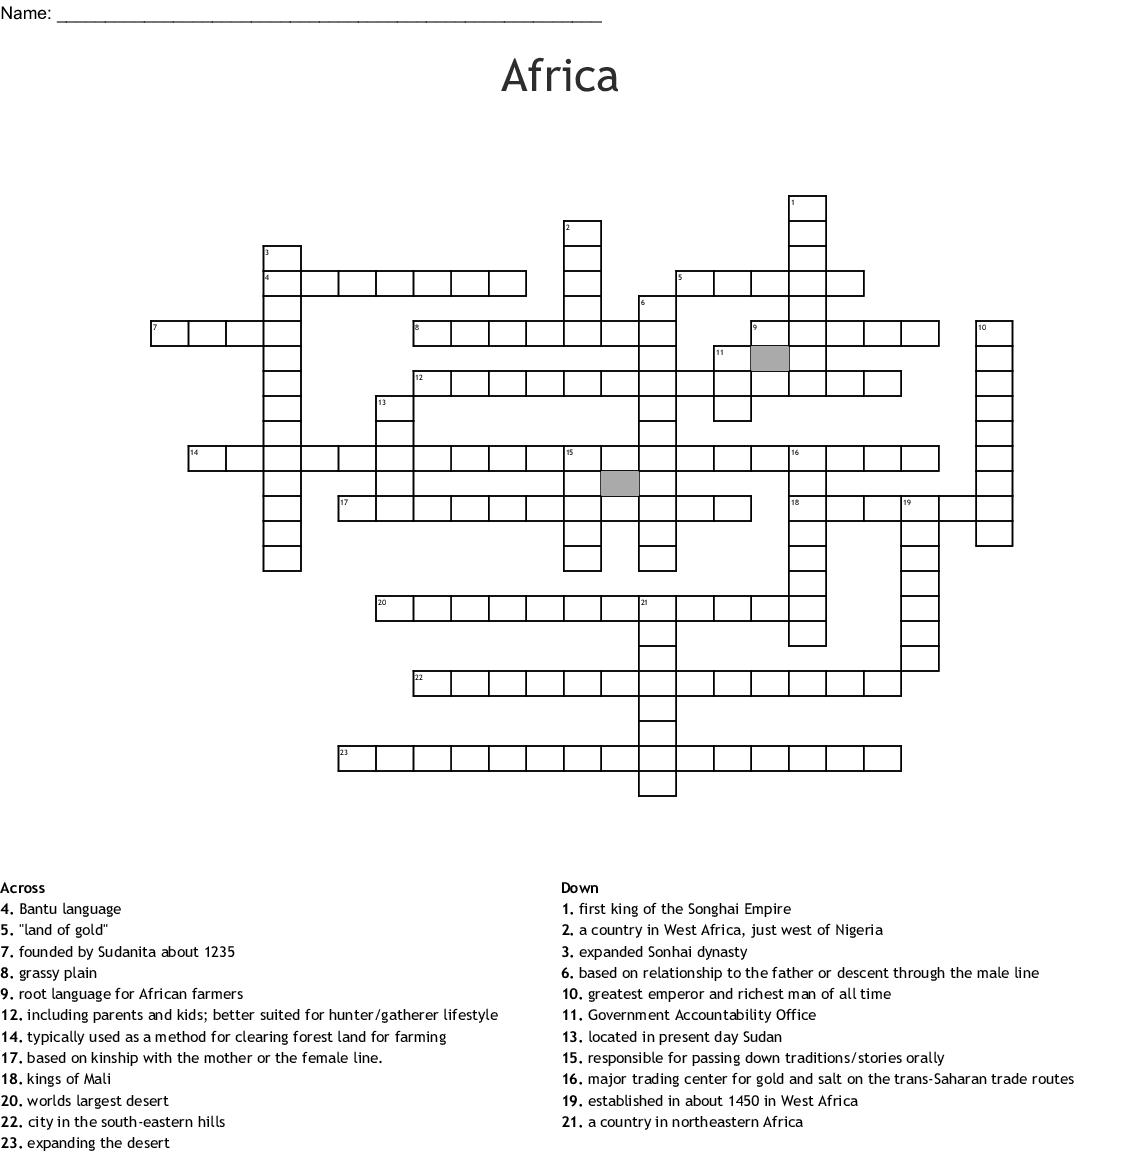 Geography Of Africa Crossword Puzzle Answers